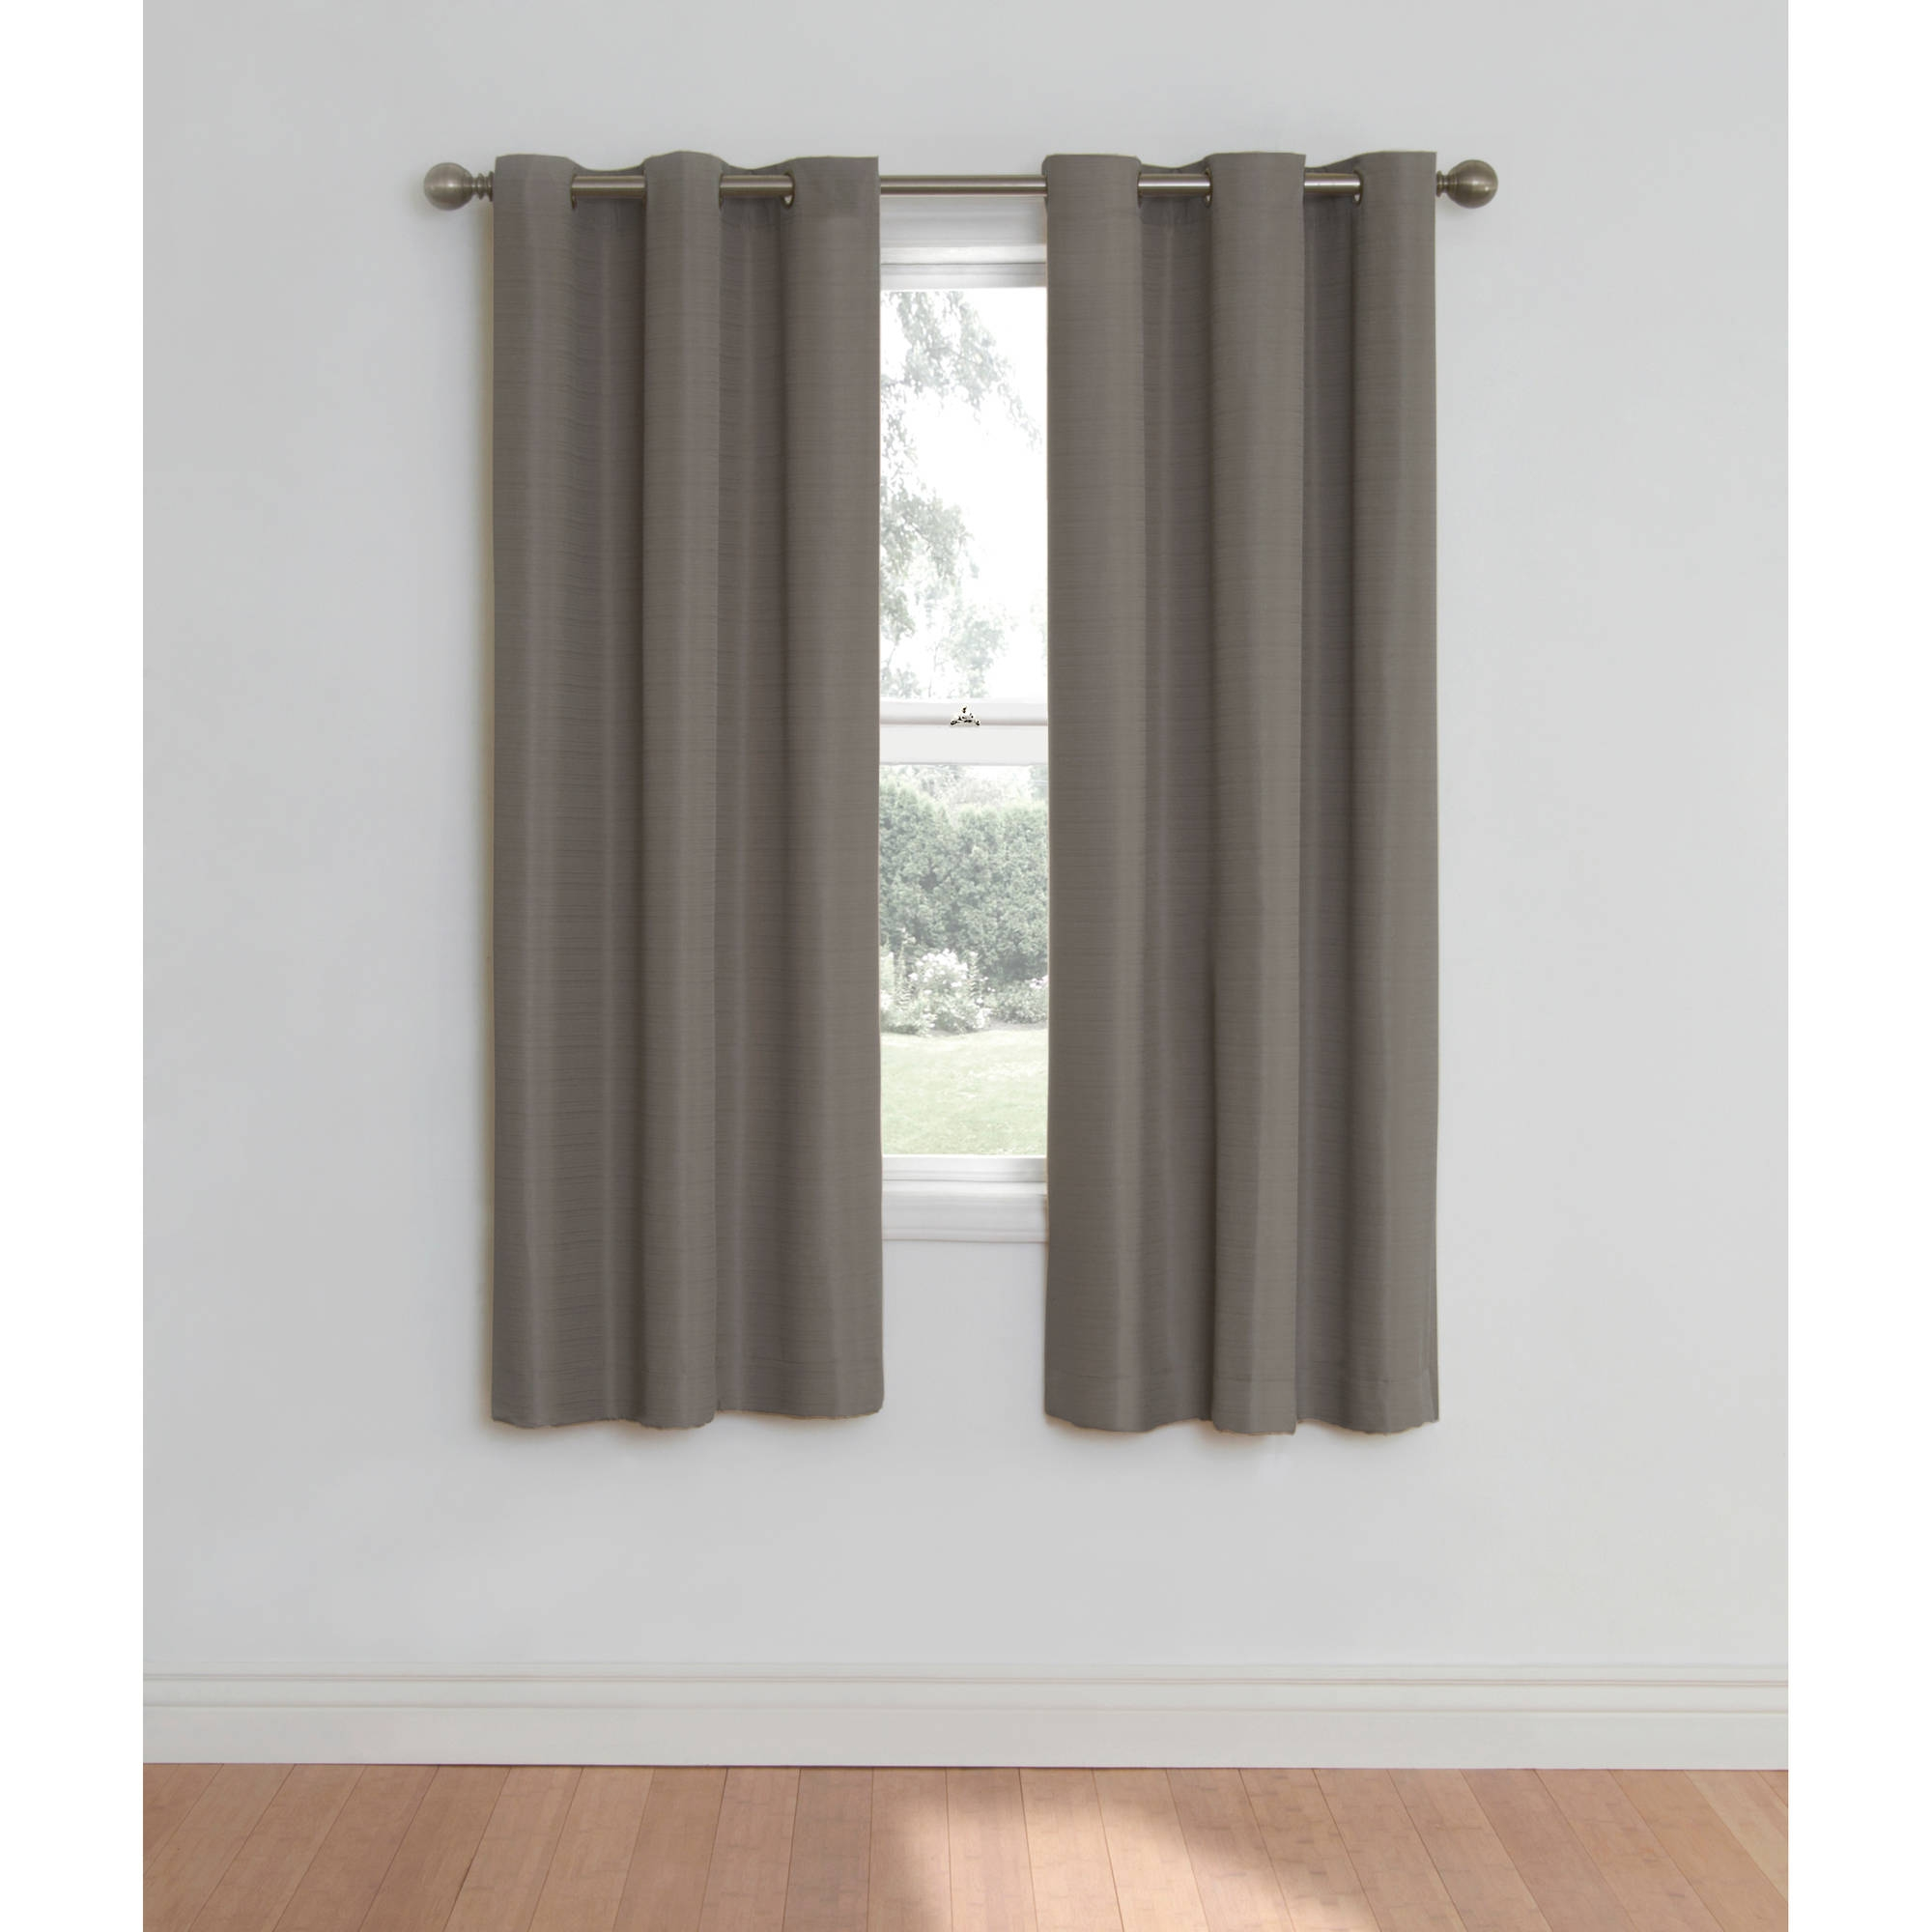 Energy Efficient Thermal Curtains Throughout White Thermal Curtains (View 7 of 15)